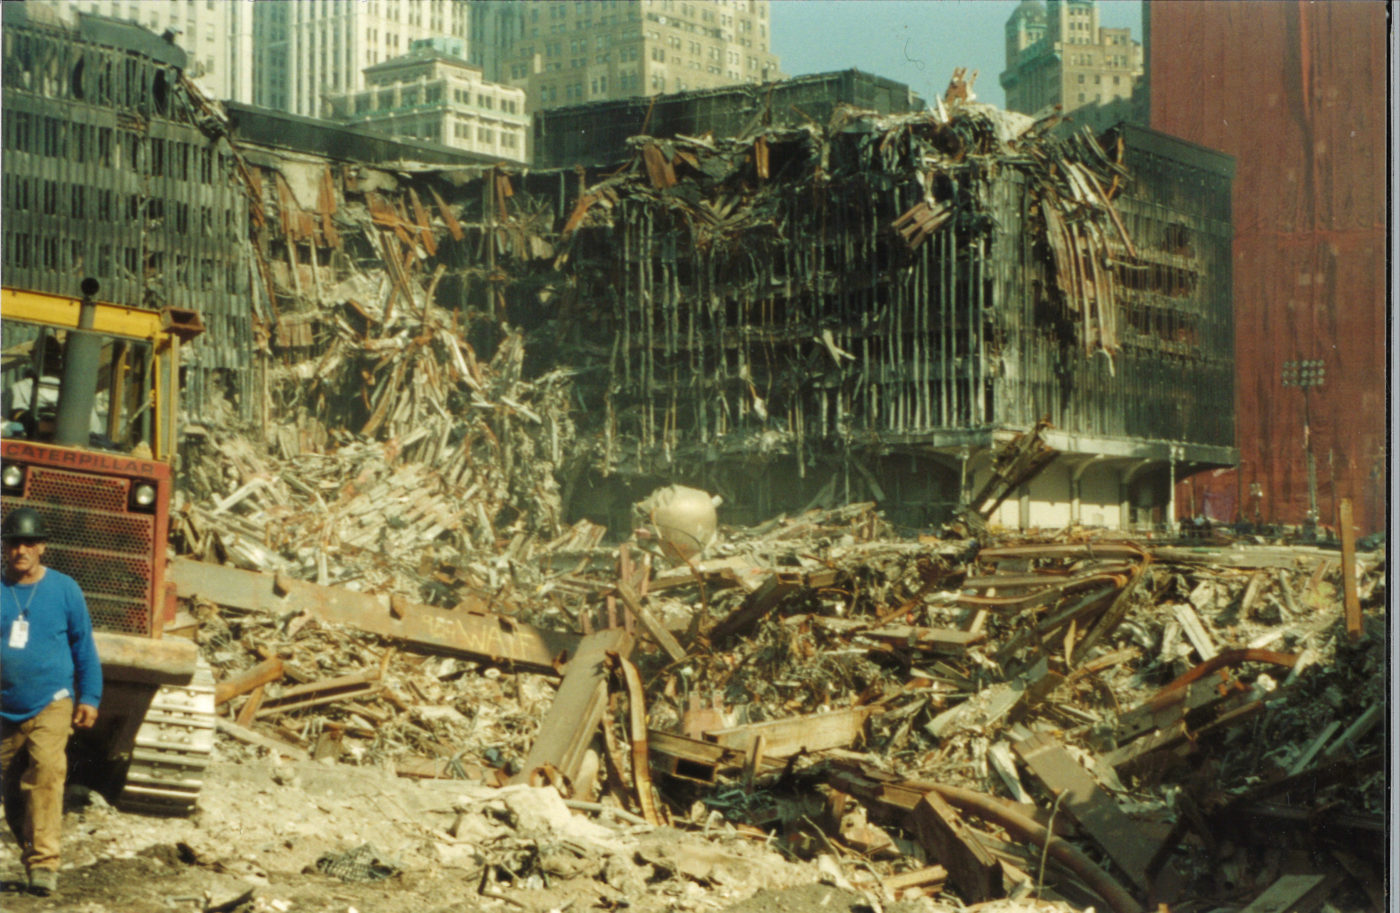 Destroyed WTC 5 with Debris and Rubble